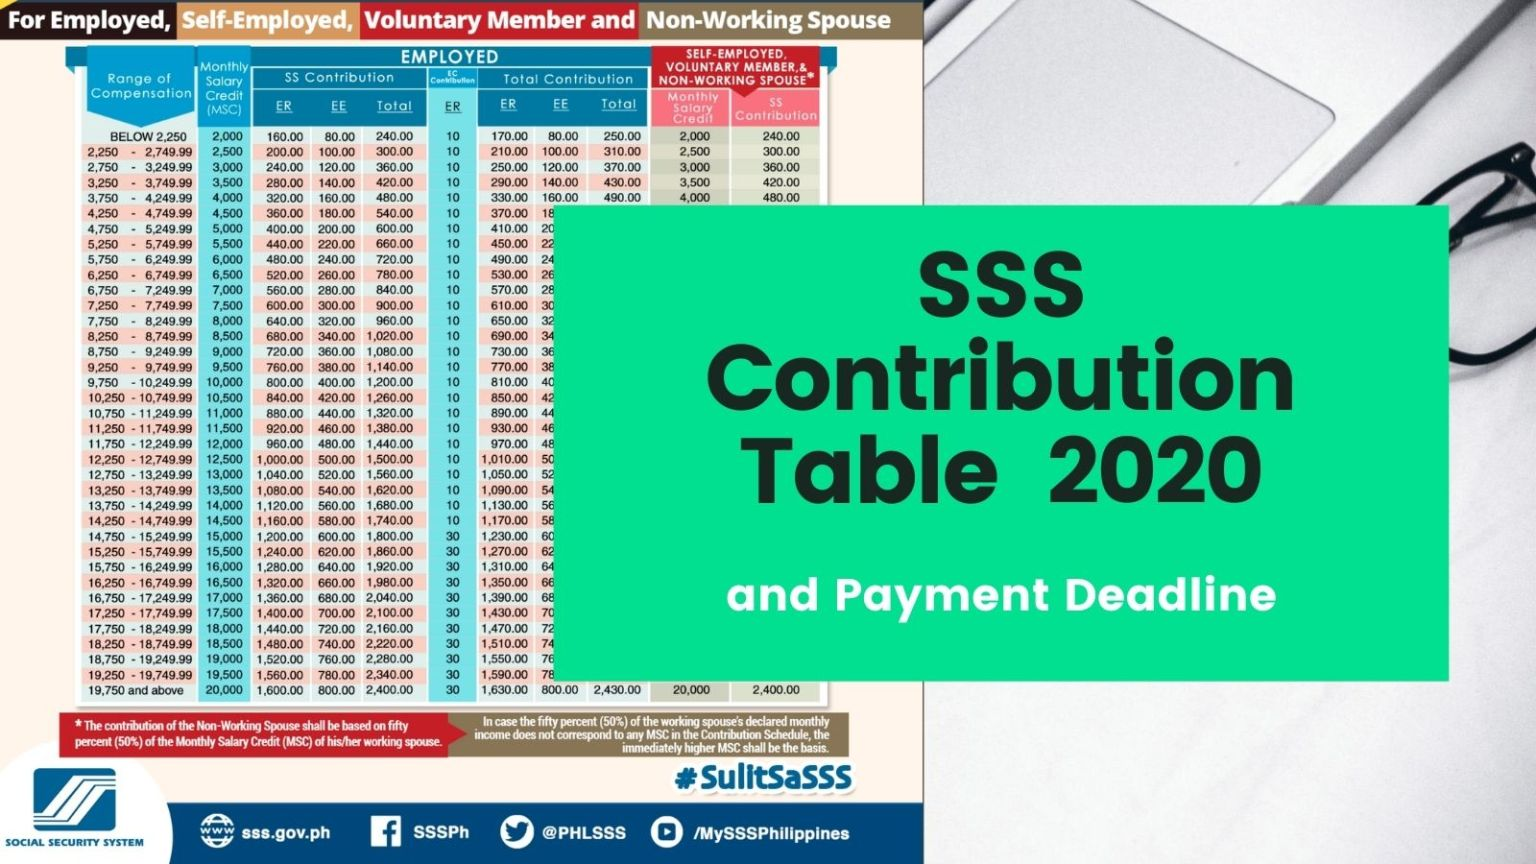 sss contribution table 2020 payment deadline